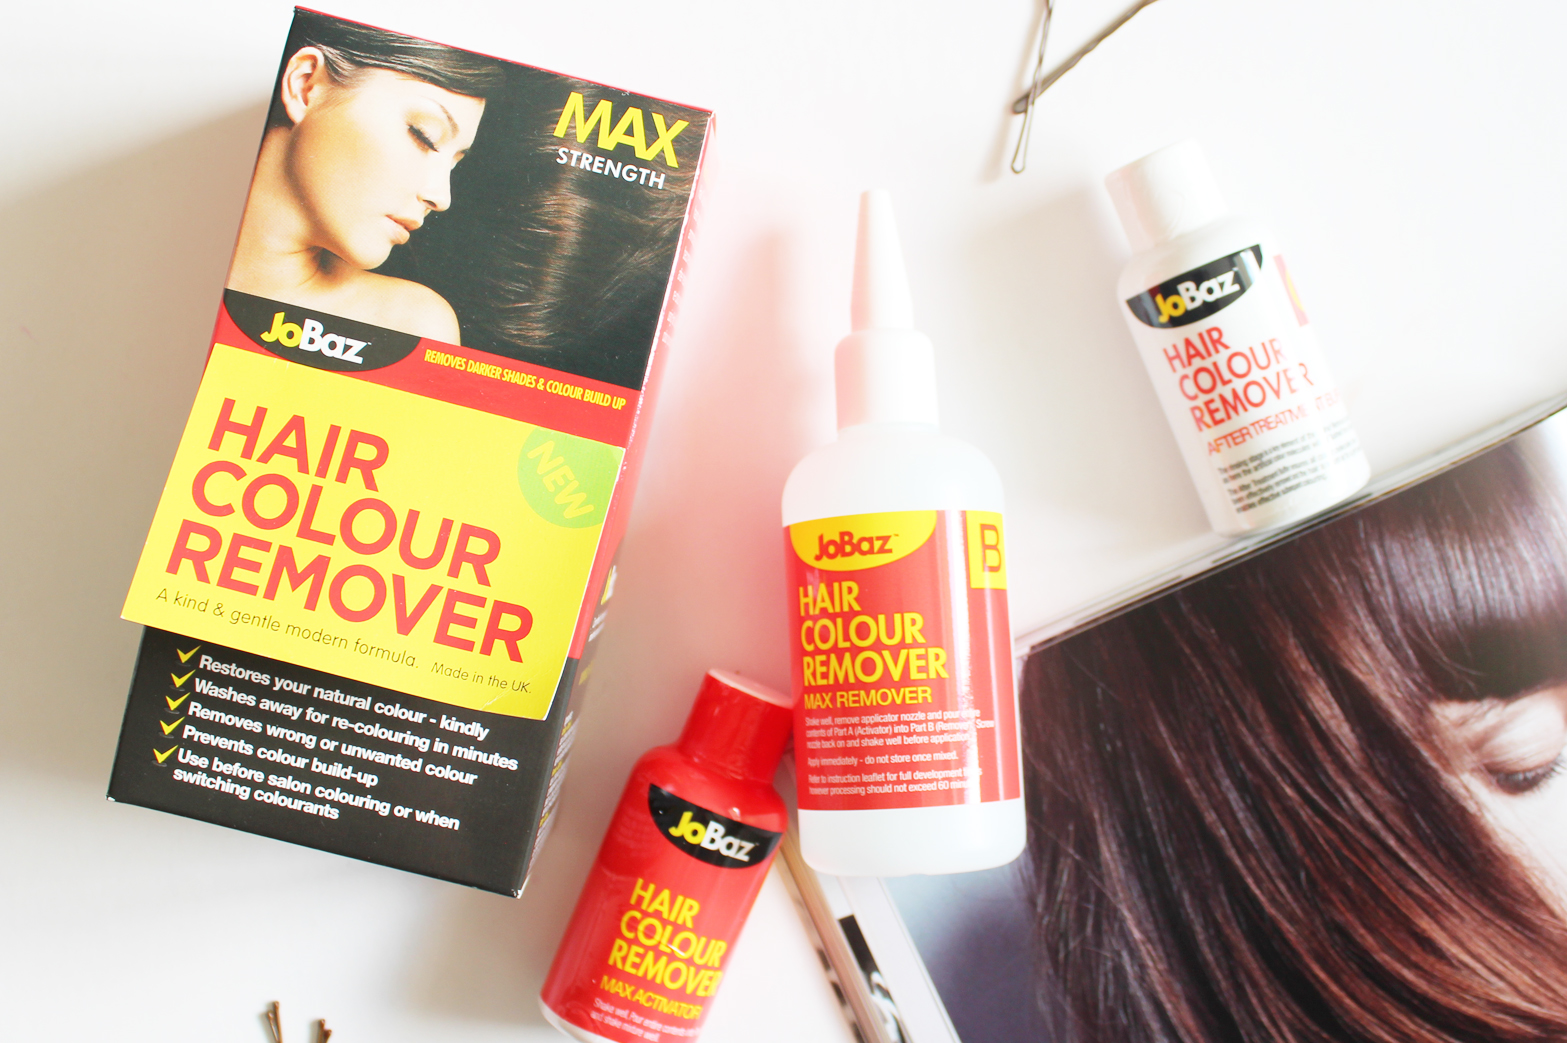 JOBAZ | Max Strength Hair Colour Remover - Review, Before + After - CassandraMyee